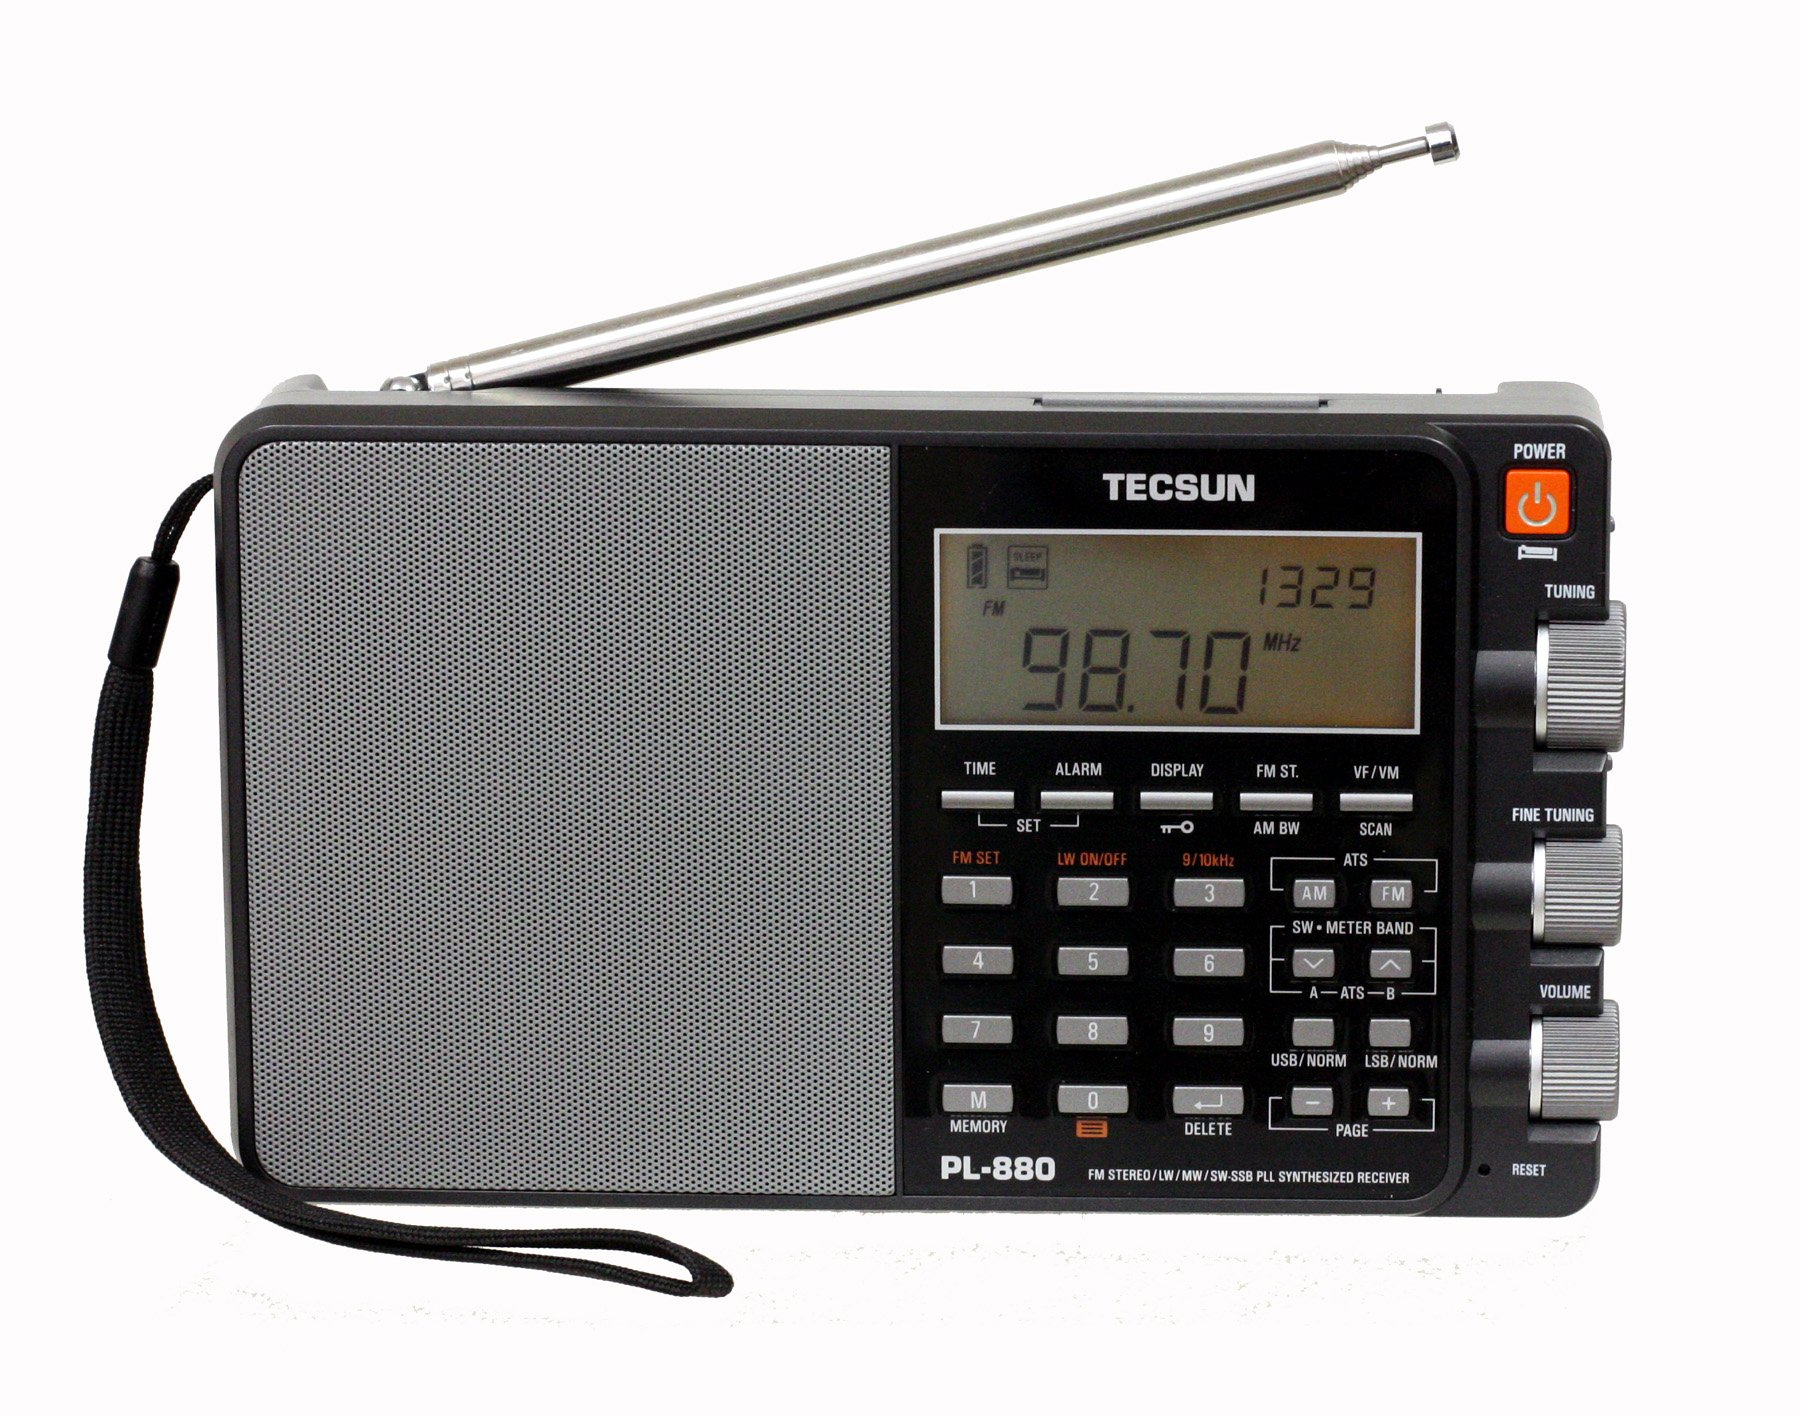 Tecsun PL880 Portable Digital PLL Dual Conversion AM/FM, Longwave & Shortwave Radio with SSB (Single Side Band) Reception by Tecsun